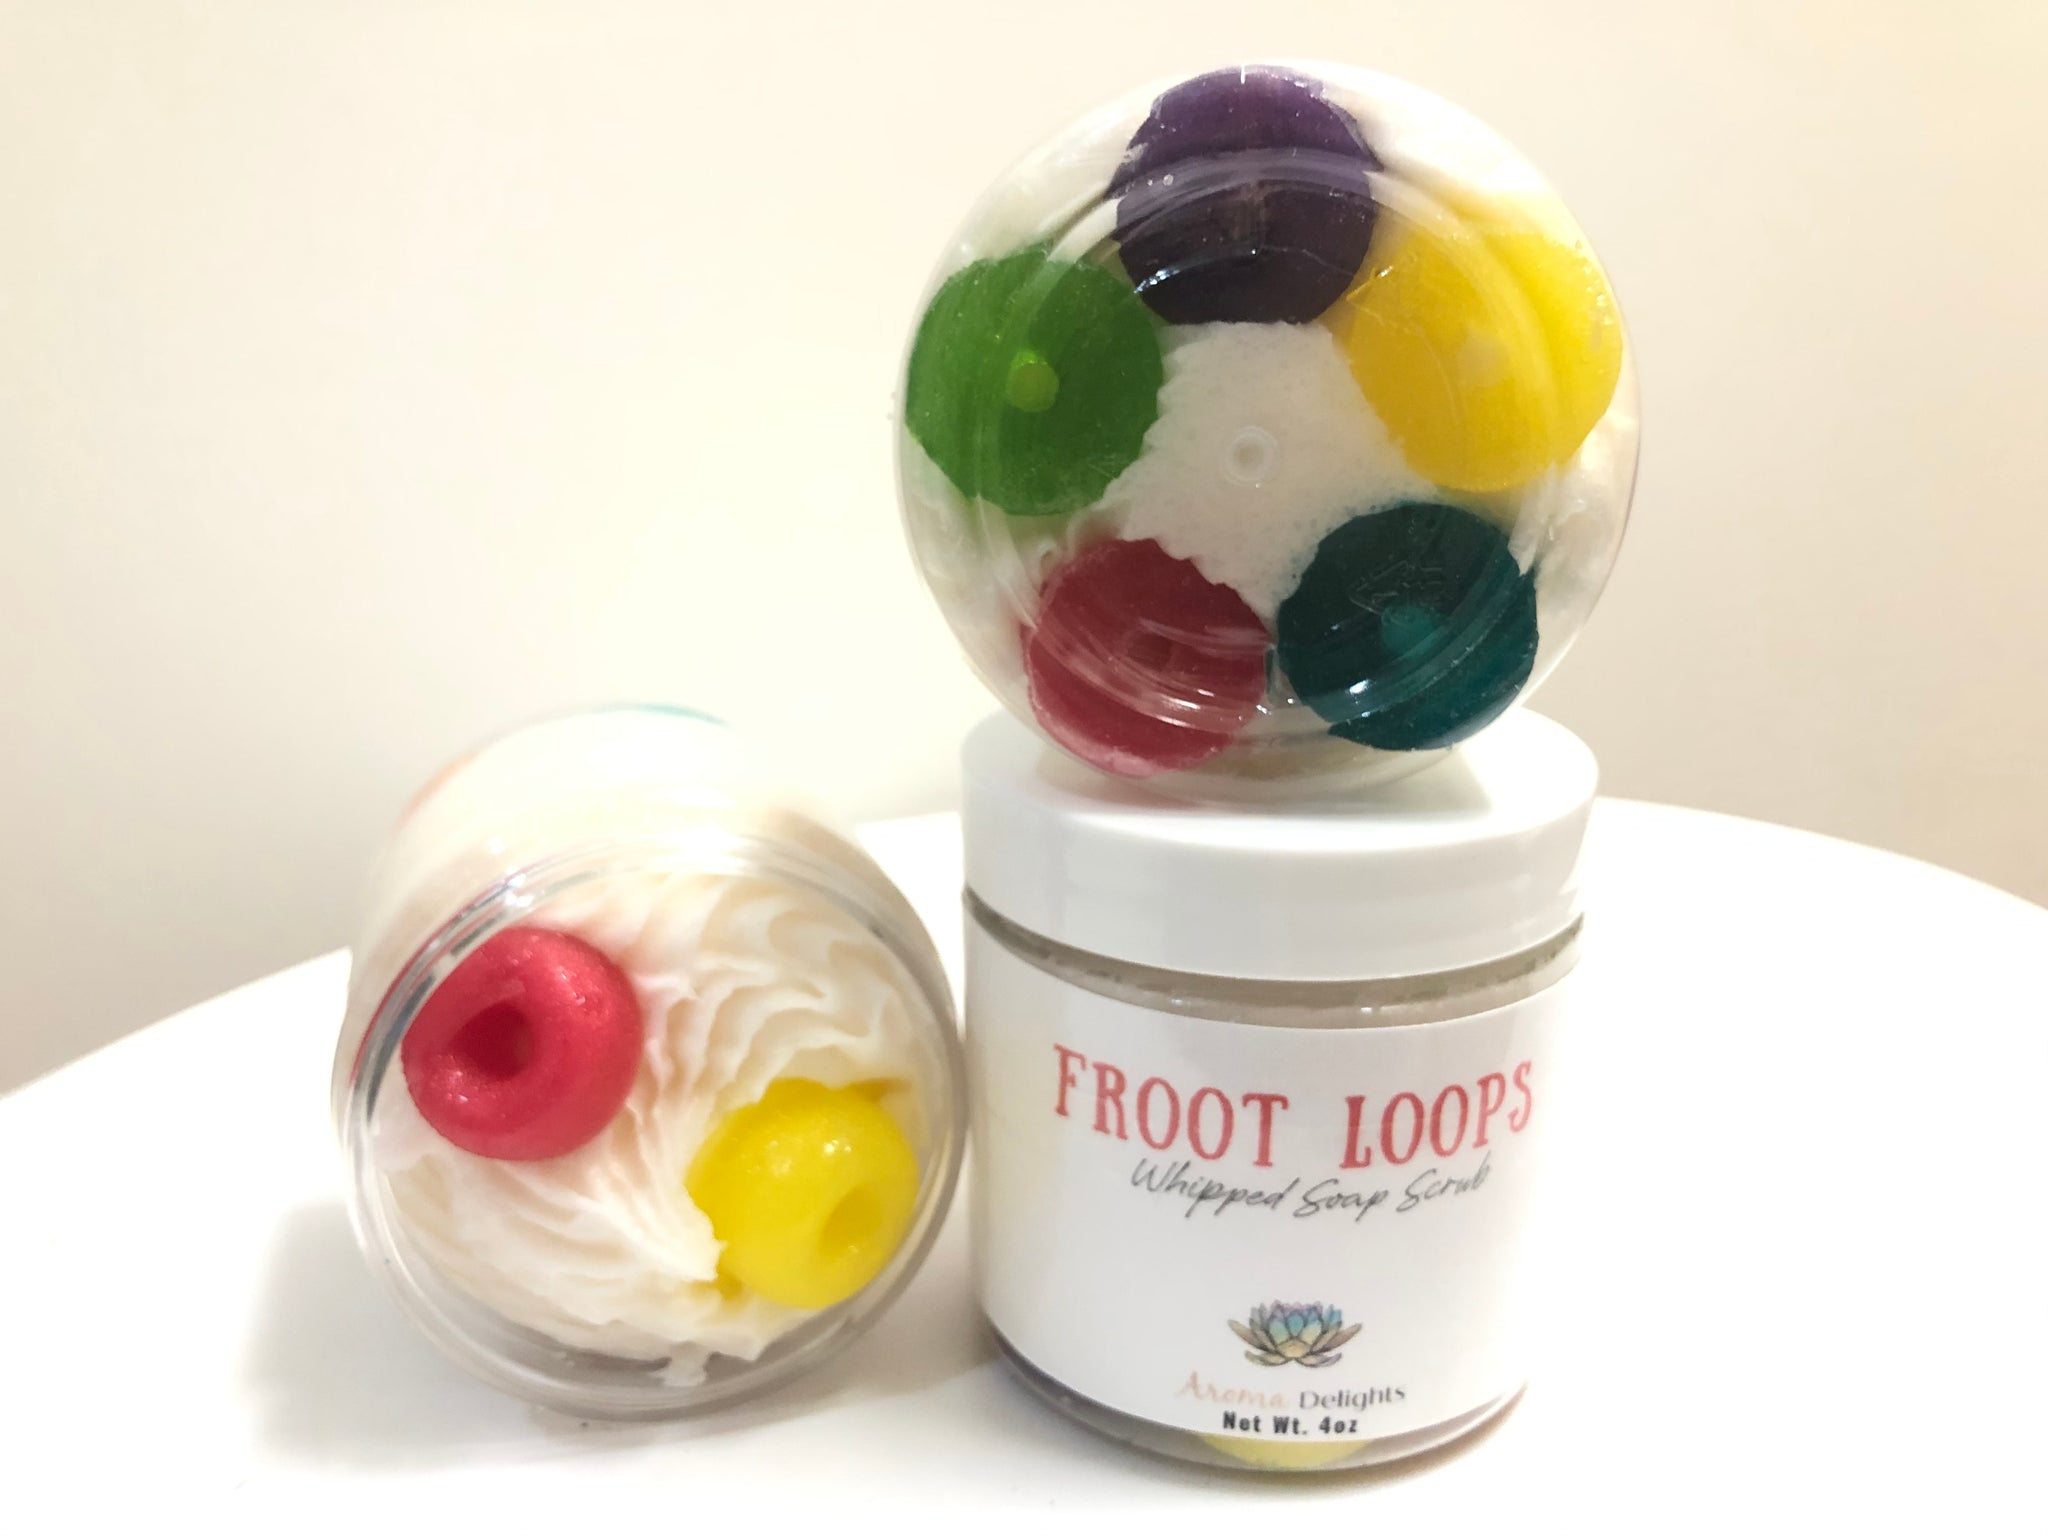 Froot Loop Whipped Soap Scrub